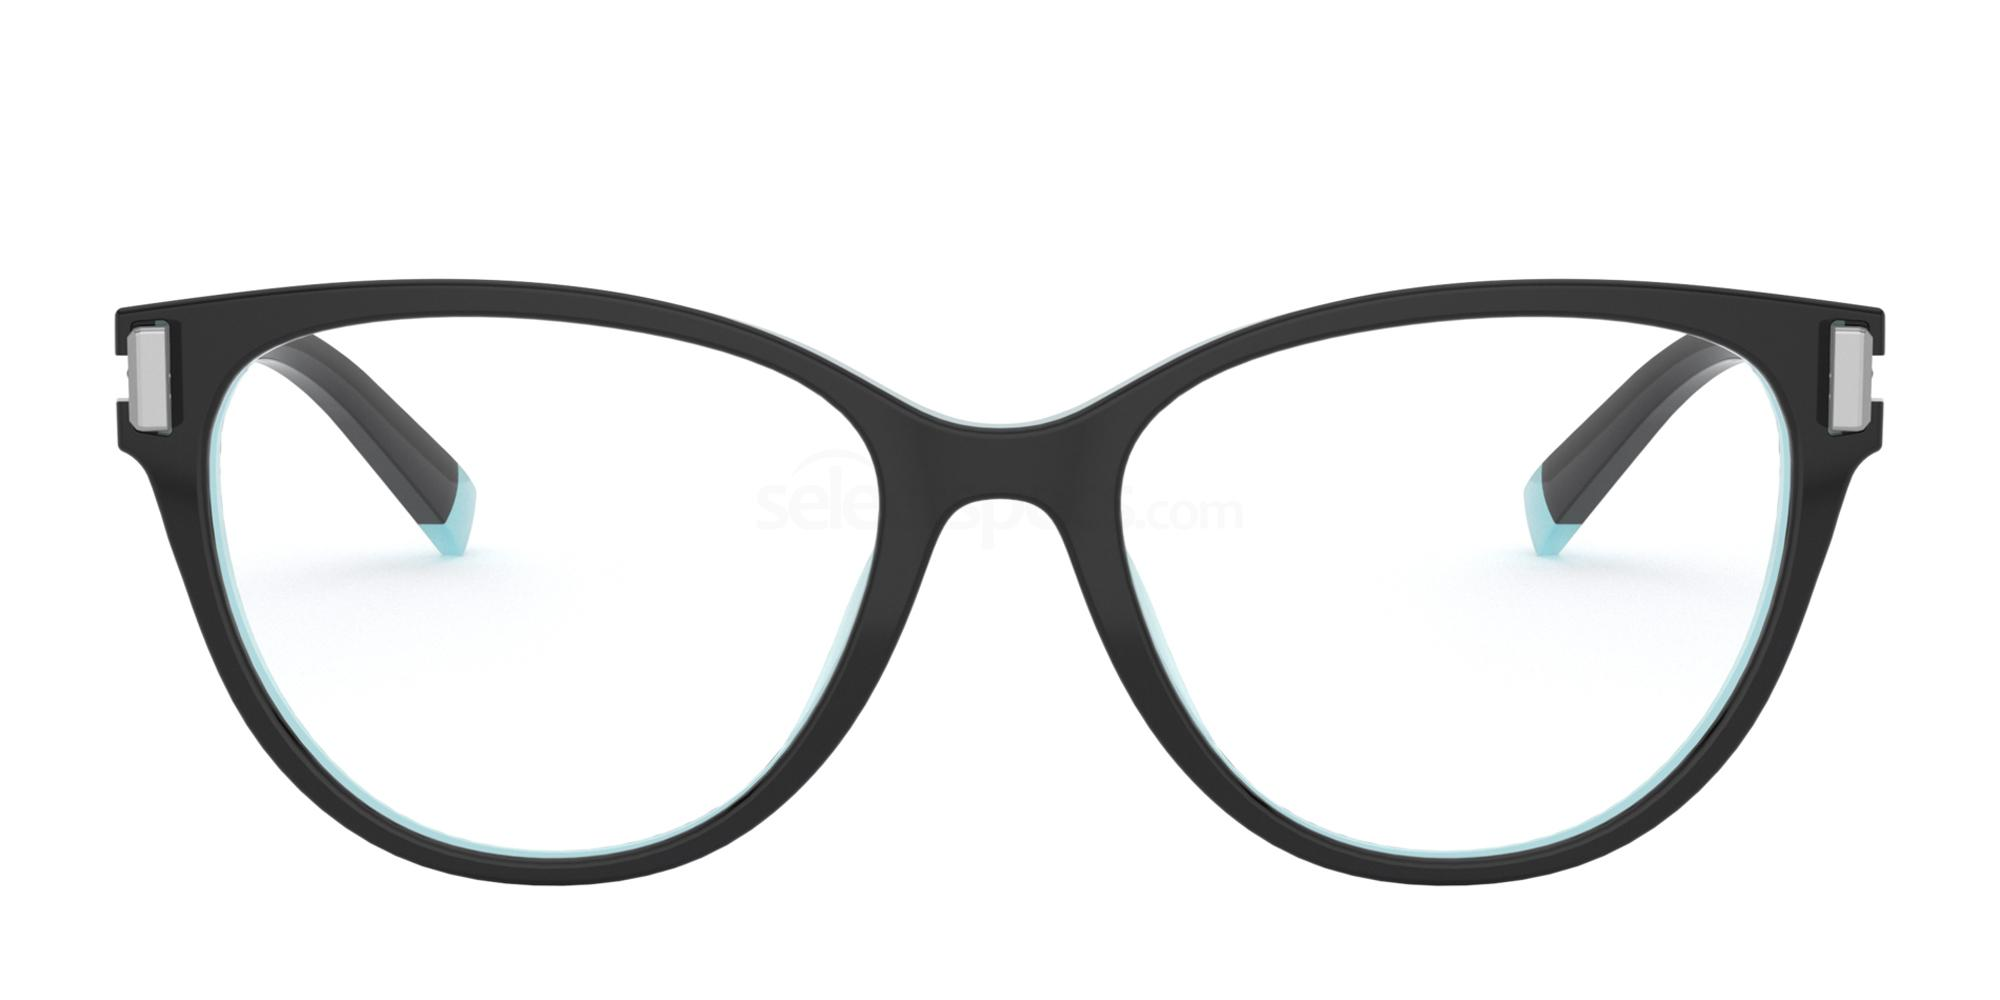 8055 TF2193 Glasses, Tiffany & Co.